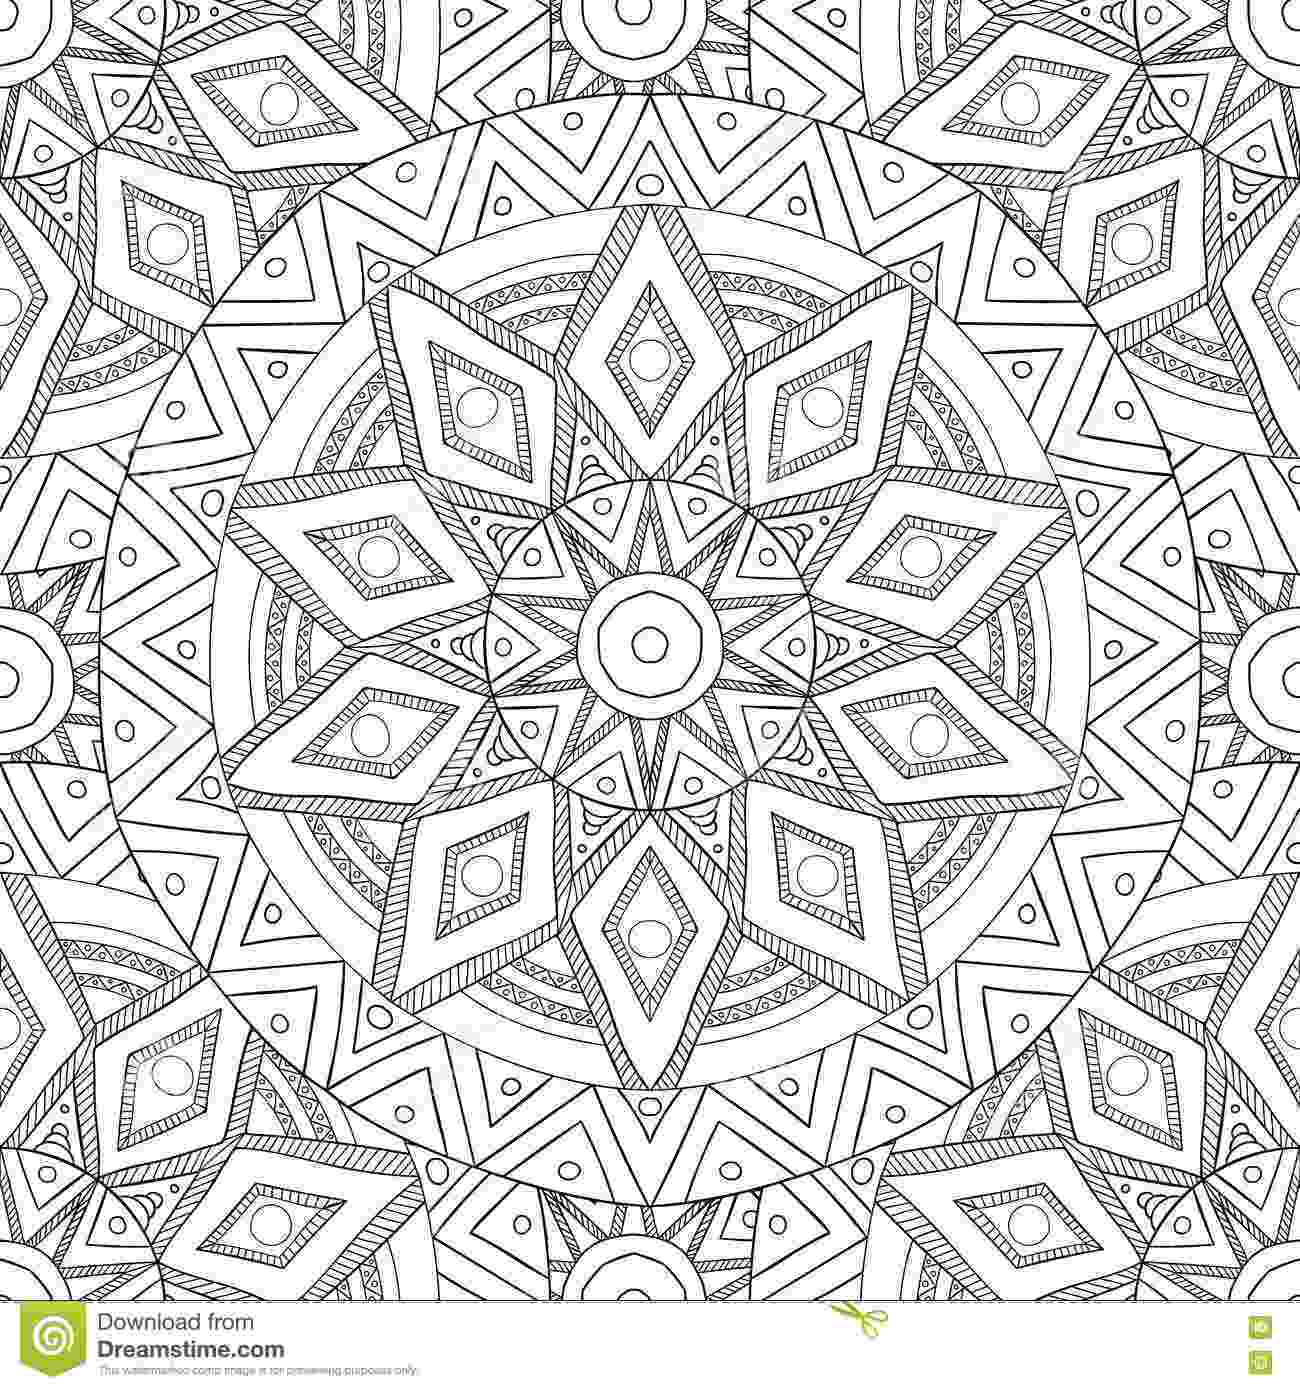 pattern coloring pages for adults coloring pages for adultsdecorative hand drawn doodle adults for pattern coloring pages